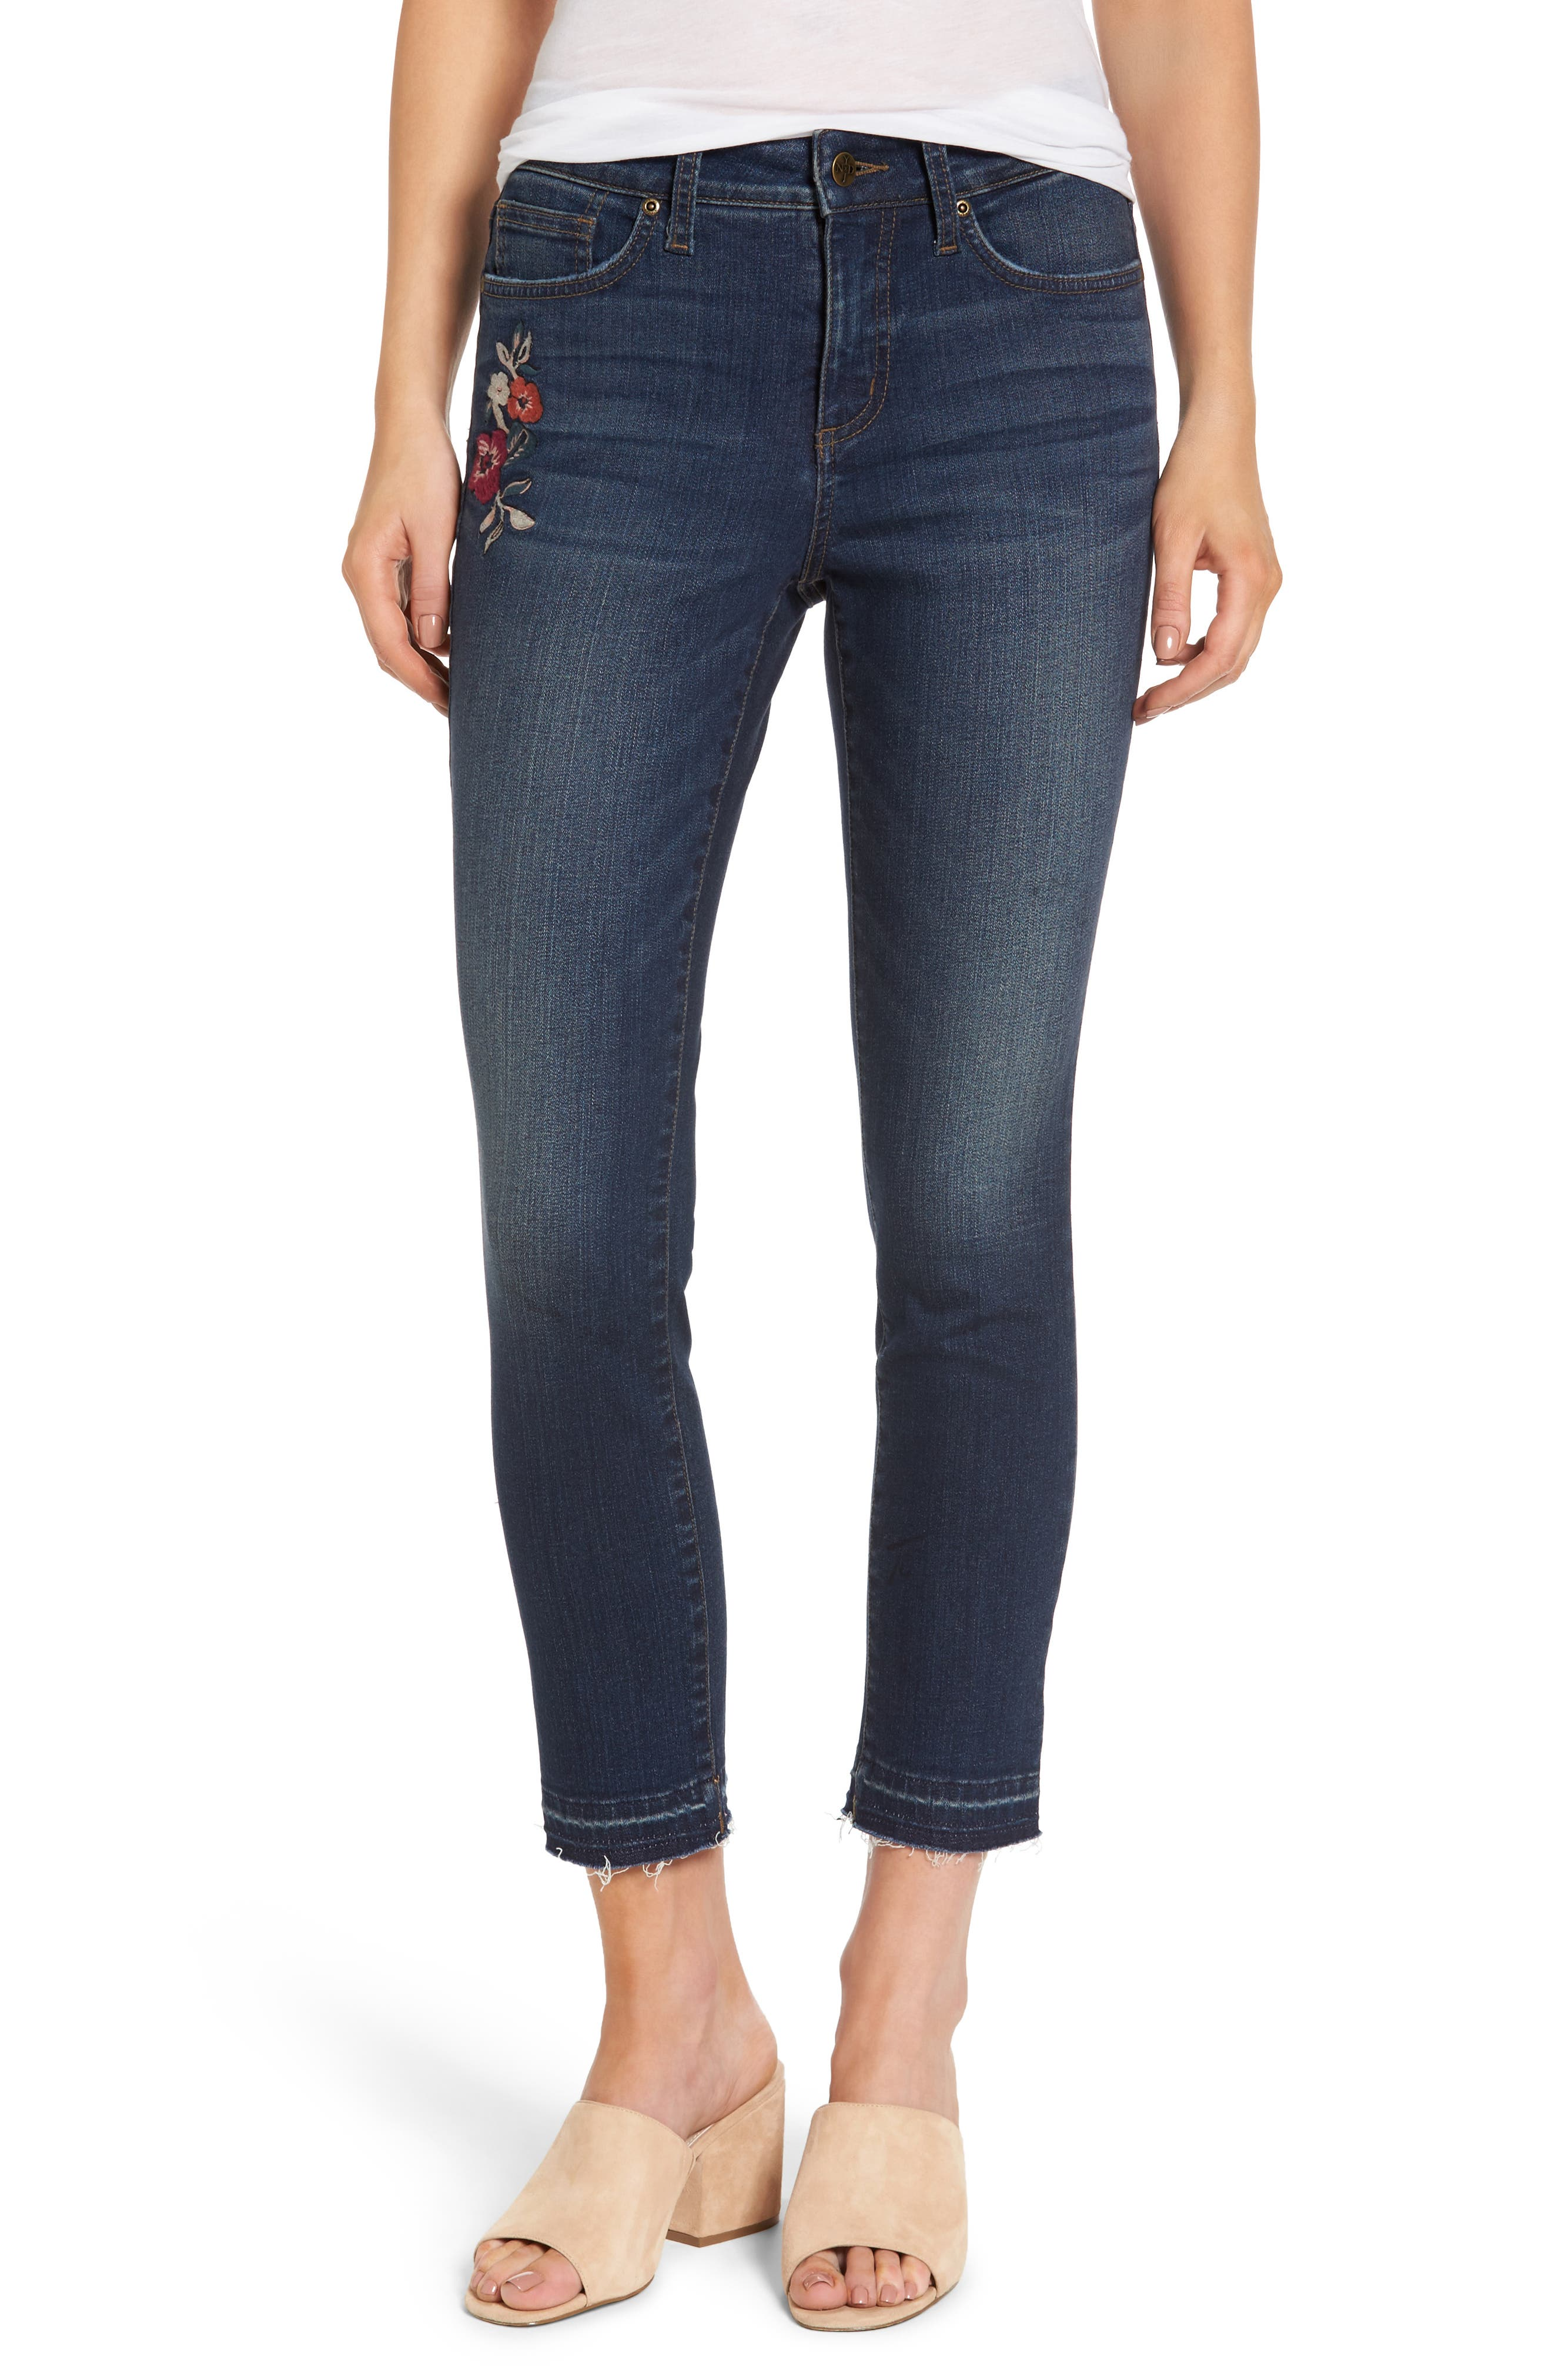 Alternate Image 1 Selected - NYDJ Alina Embroidered Stretch Skinny Ankle Jeans (Horizon)